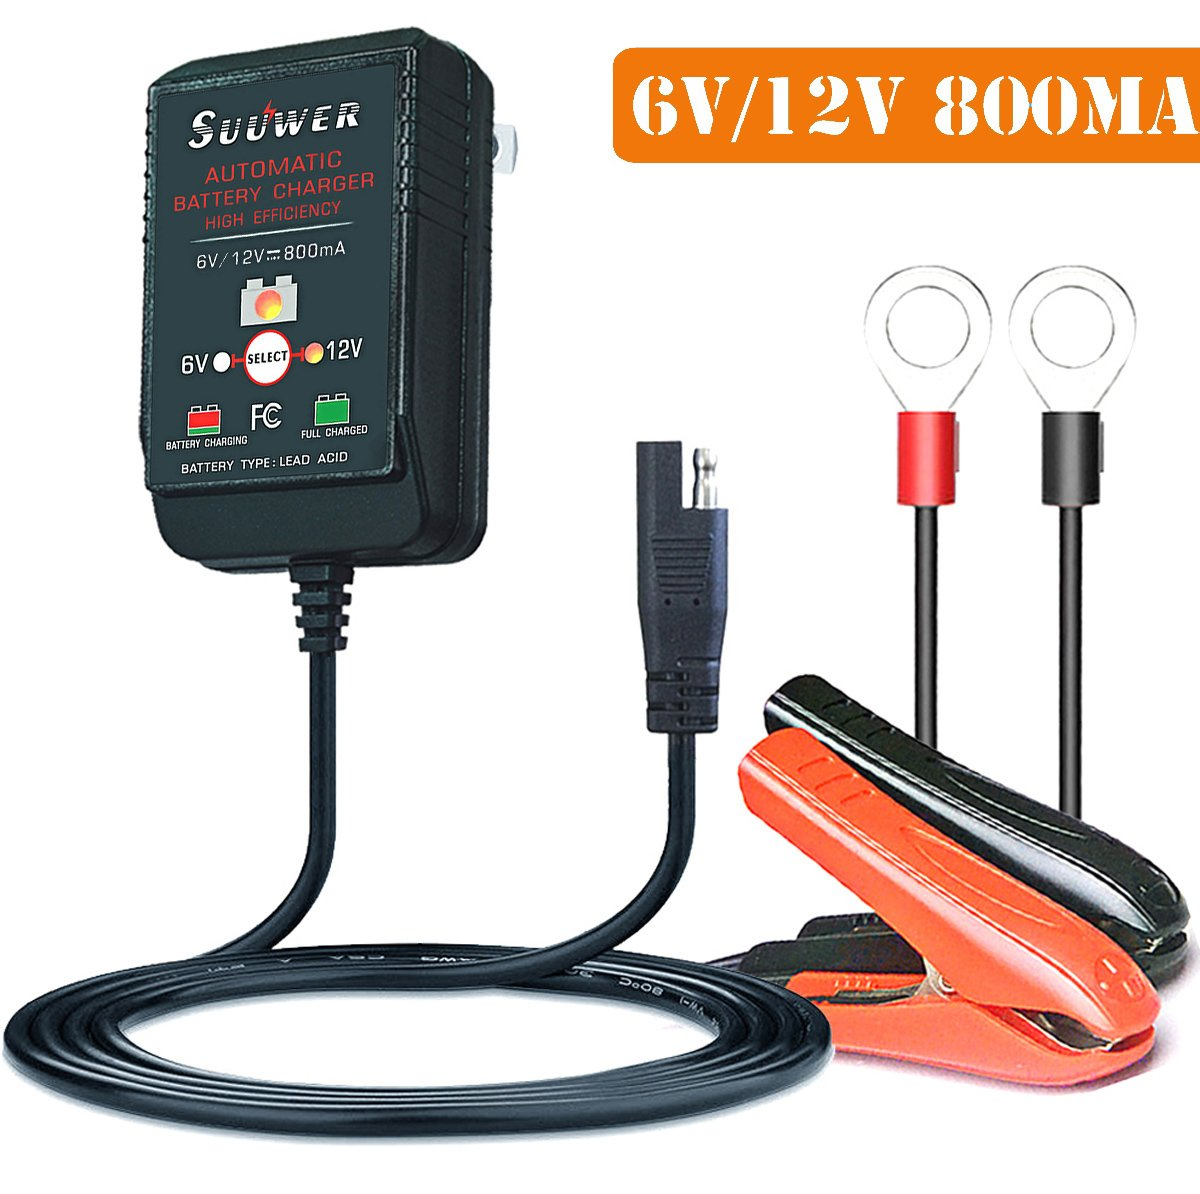 Suuwer 6v 12v 800ma Is A Super Smart Battery Charger Circuit Lead Acid Monitor That Will Constantly Trickle Charge And Maintain Your For Car Truck Boat